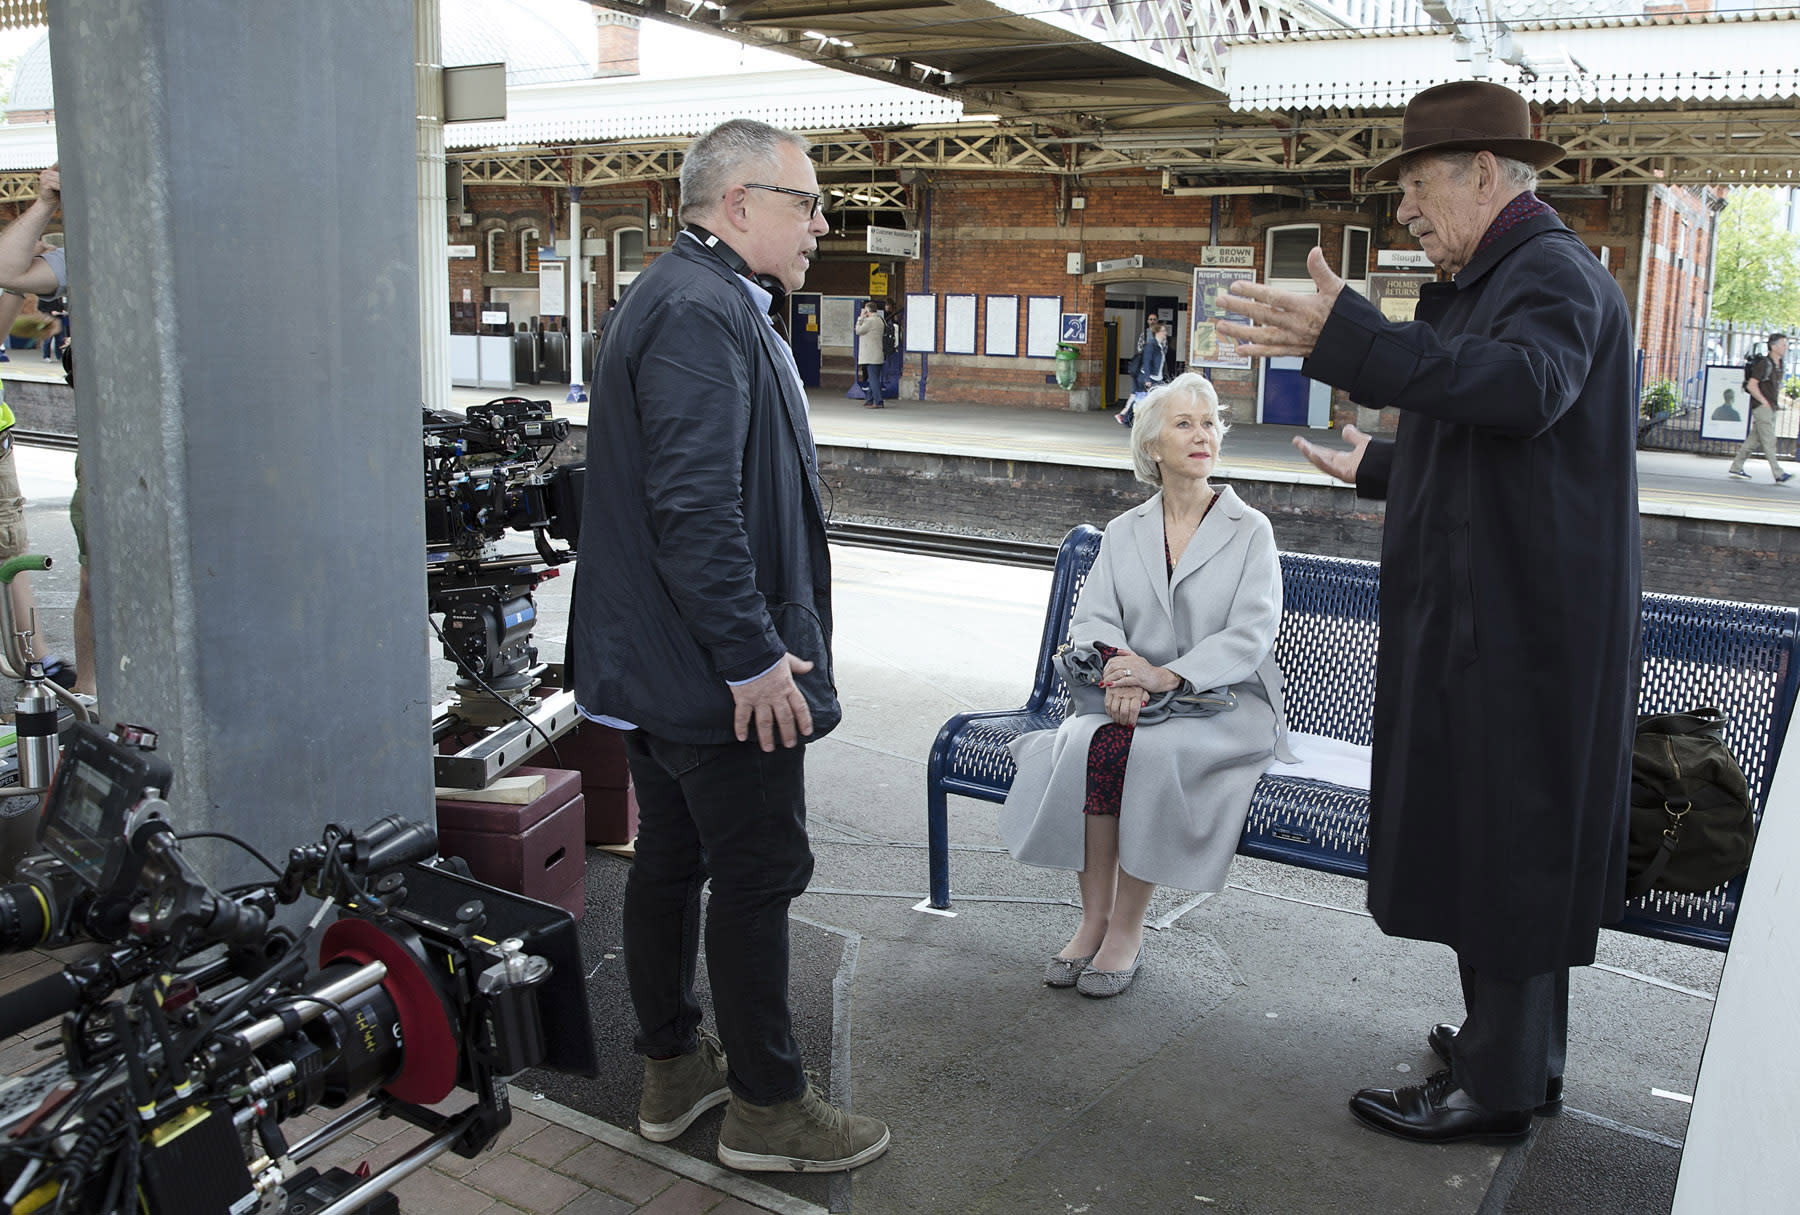 Bill Condon gives direction to Helen Mirren and Ian McKellen while on location for The Good Liar. (Warner Bros.)